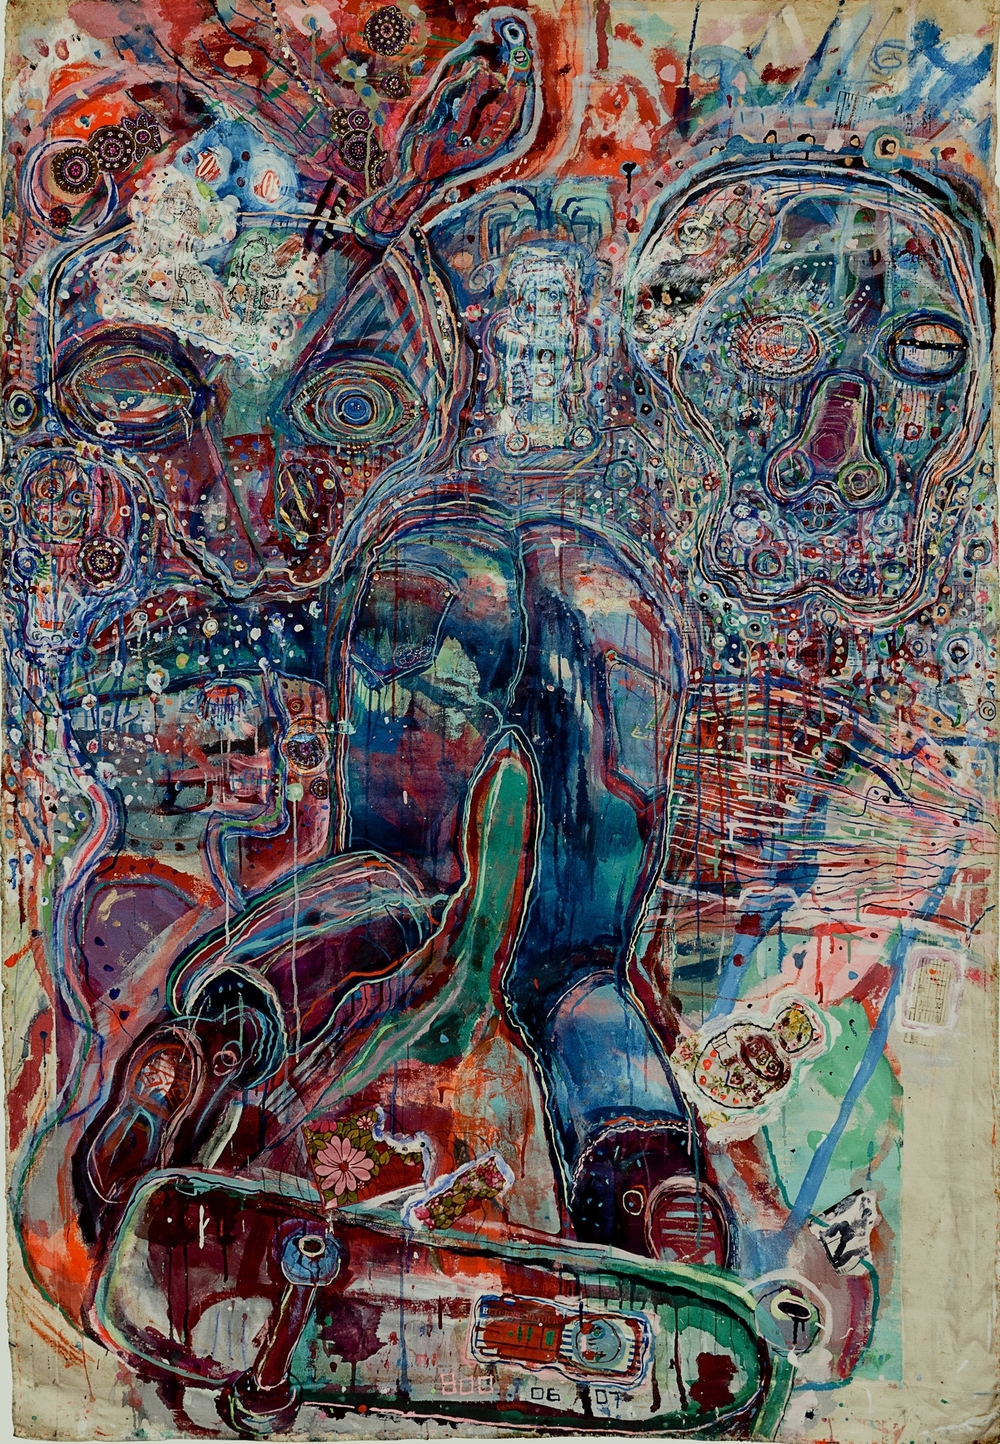 Skaterdater, mixed media on canvas, 5ft x 6ft, 2007